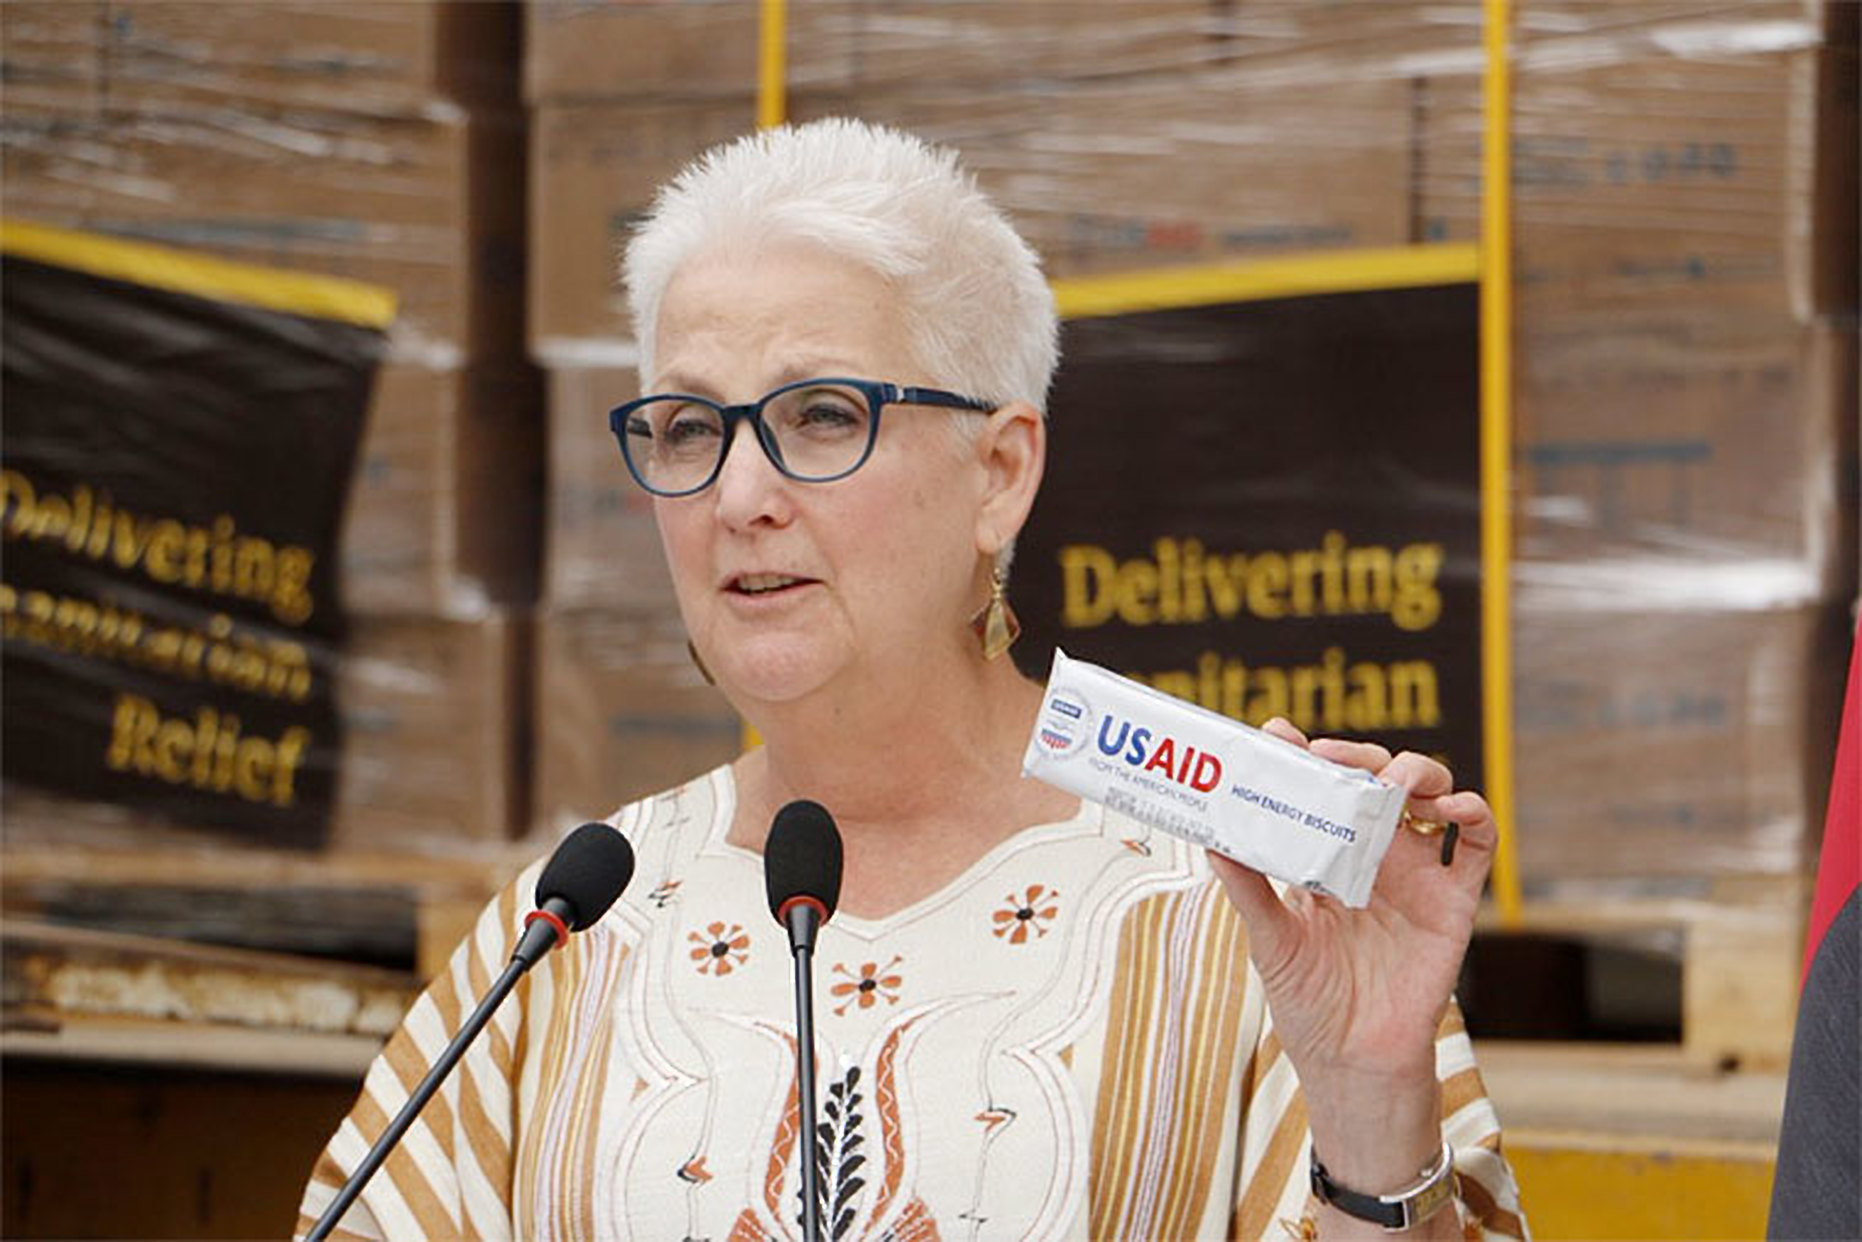 U.S Ambassador to Uganda, H.E Deborah R. Malac has affirmed US's continued support to the refugees in Uganda with (COURTESY PHOTO)